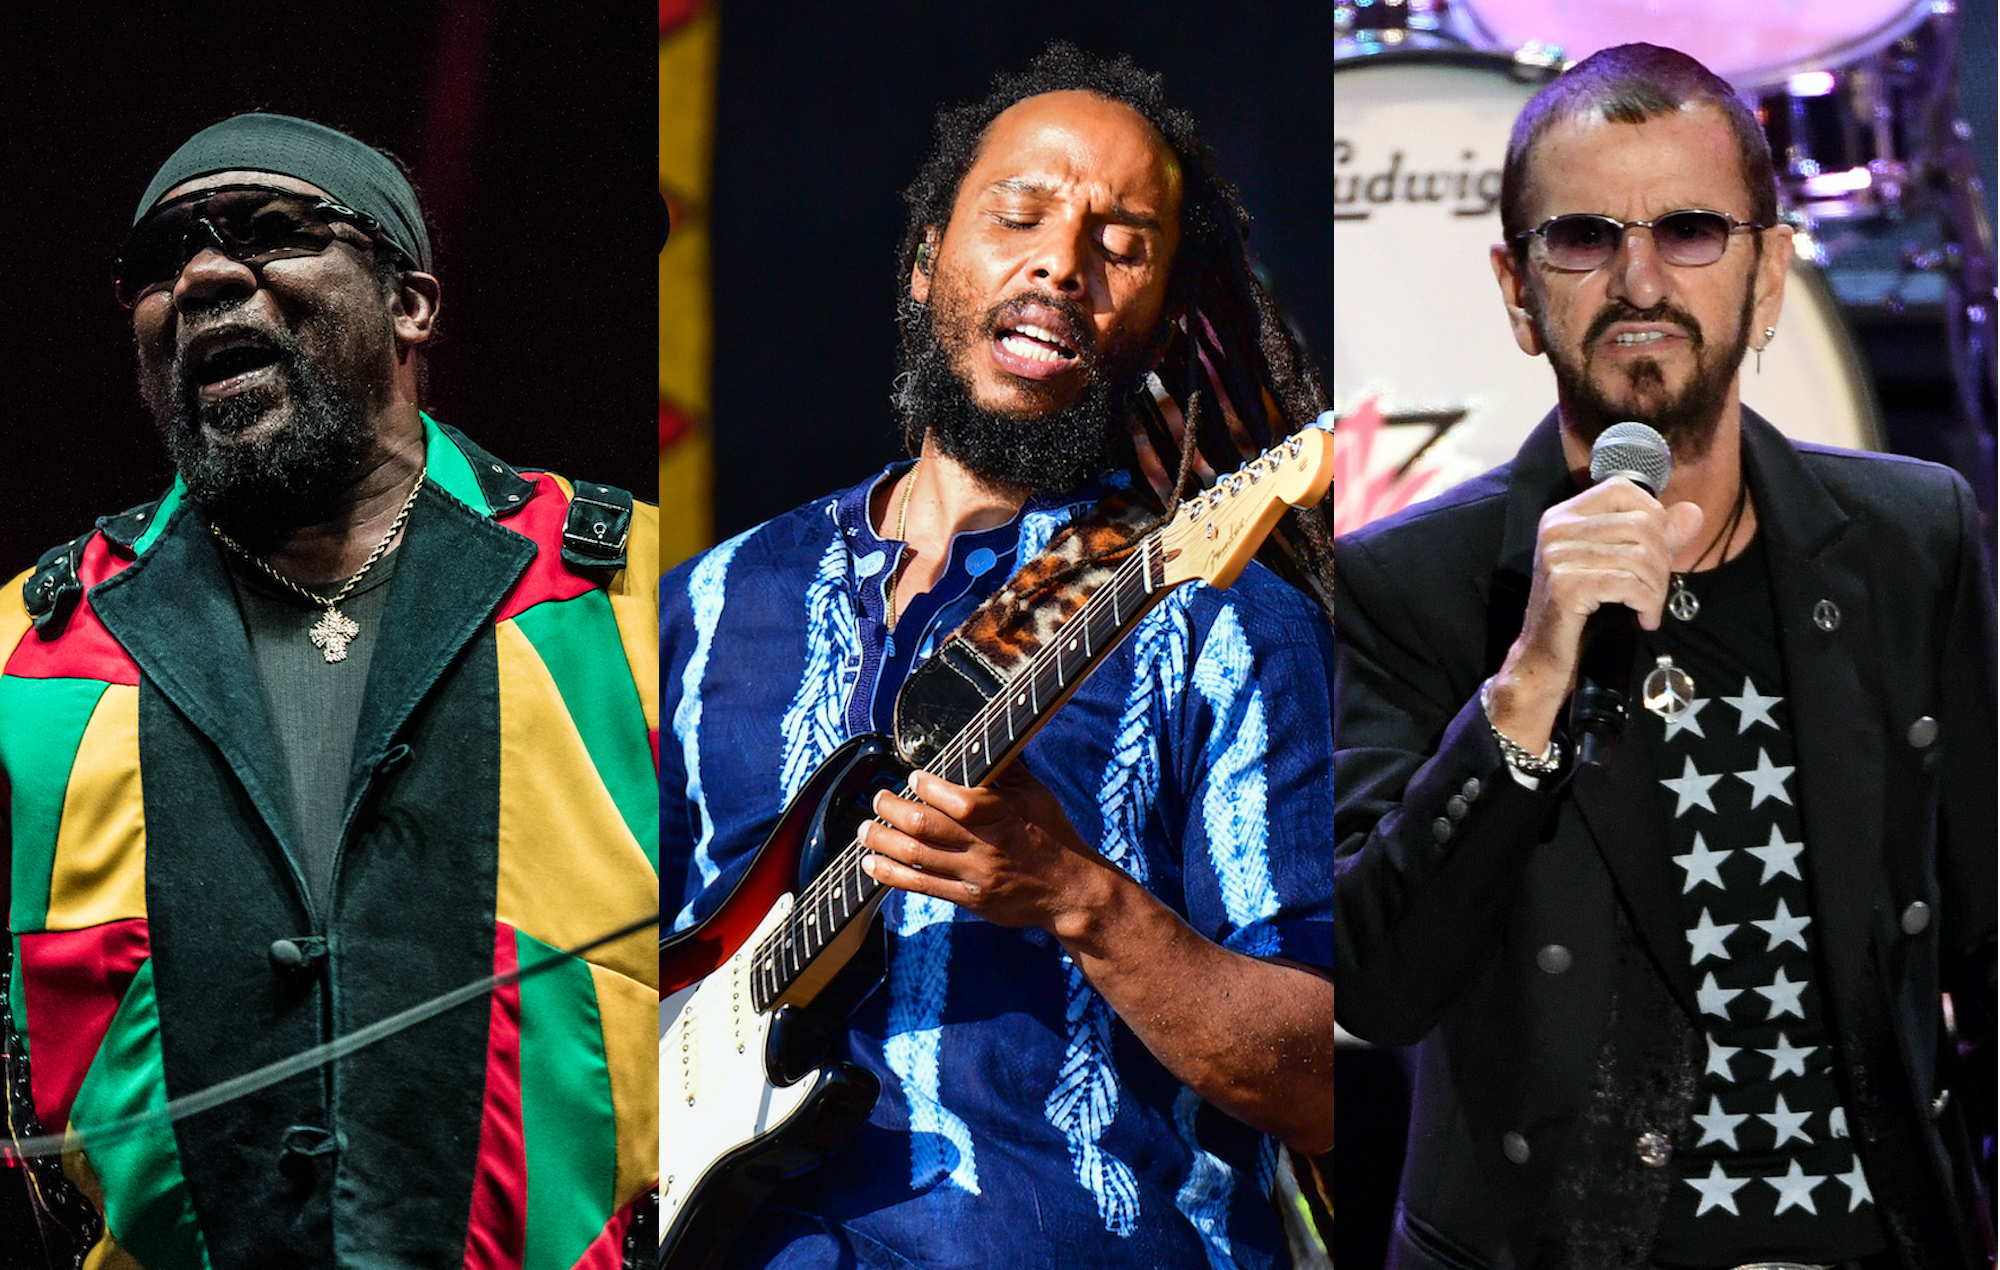 Listen to Toots And The Maytals, Ziggy Marley and Ringo Starr team up on Bob Marley cover